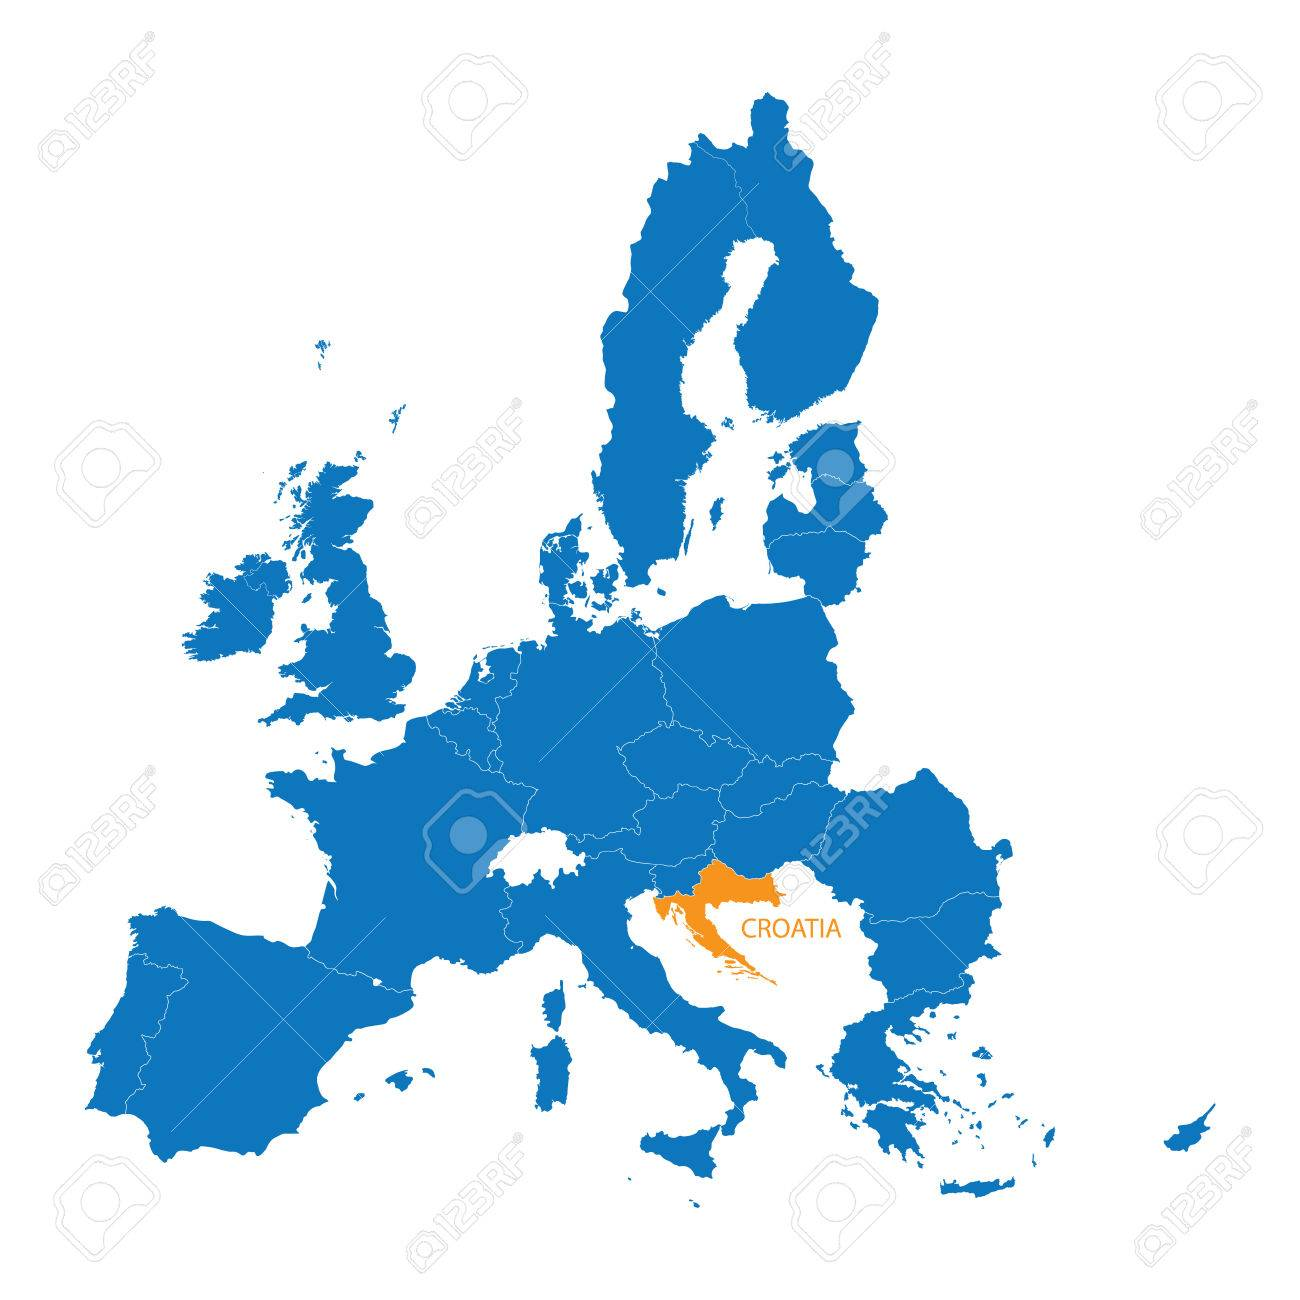 Blue Map Of The European Union With Indication Of Croatia Royalty